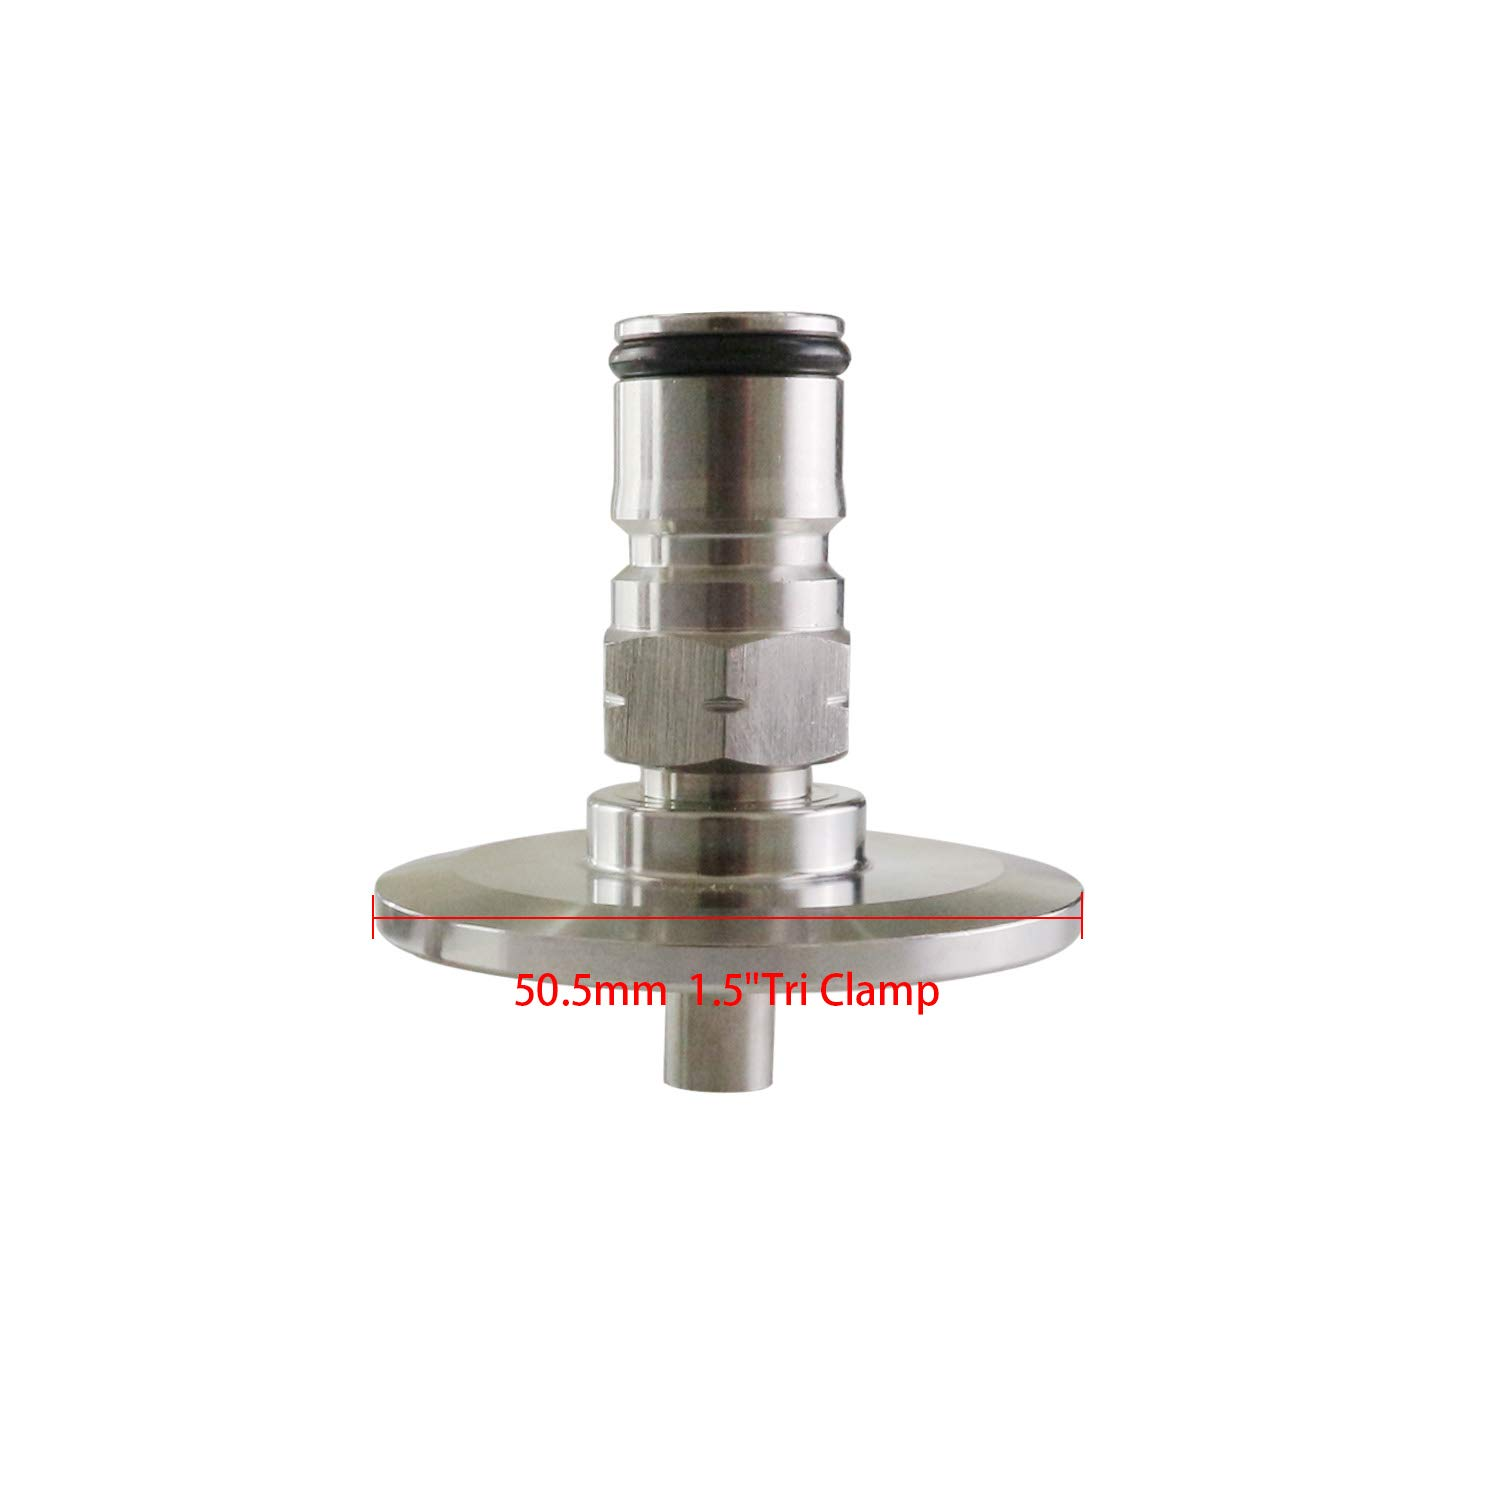 1.5''Tri Clamp to Ball Lock Post, SS304 Sanitary Brewer Fitting, 50.5mm OD ferrule for SS conical fermenter pressure transfer (Gas) by CRBrewBeer